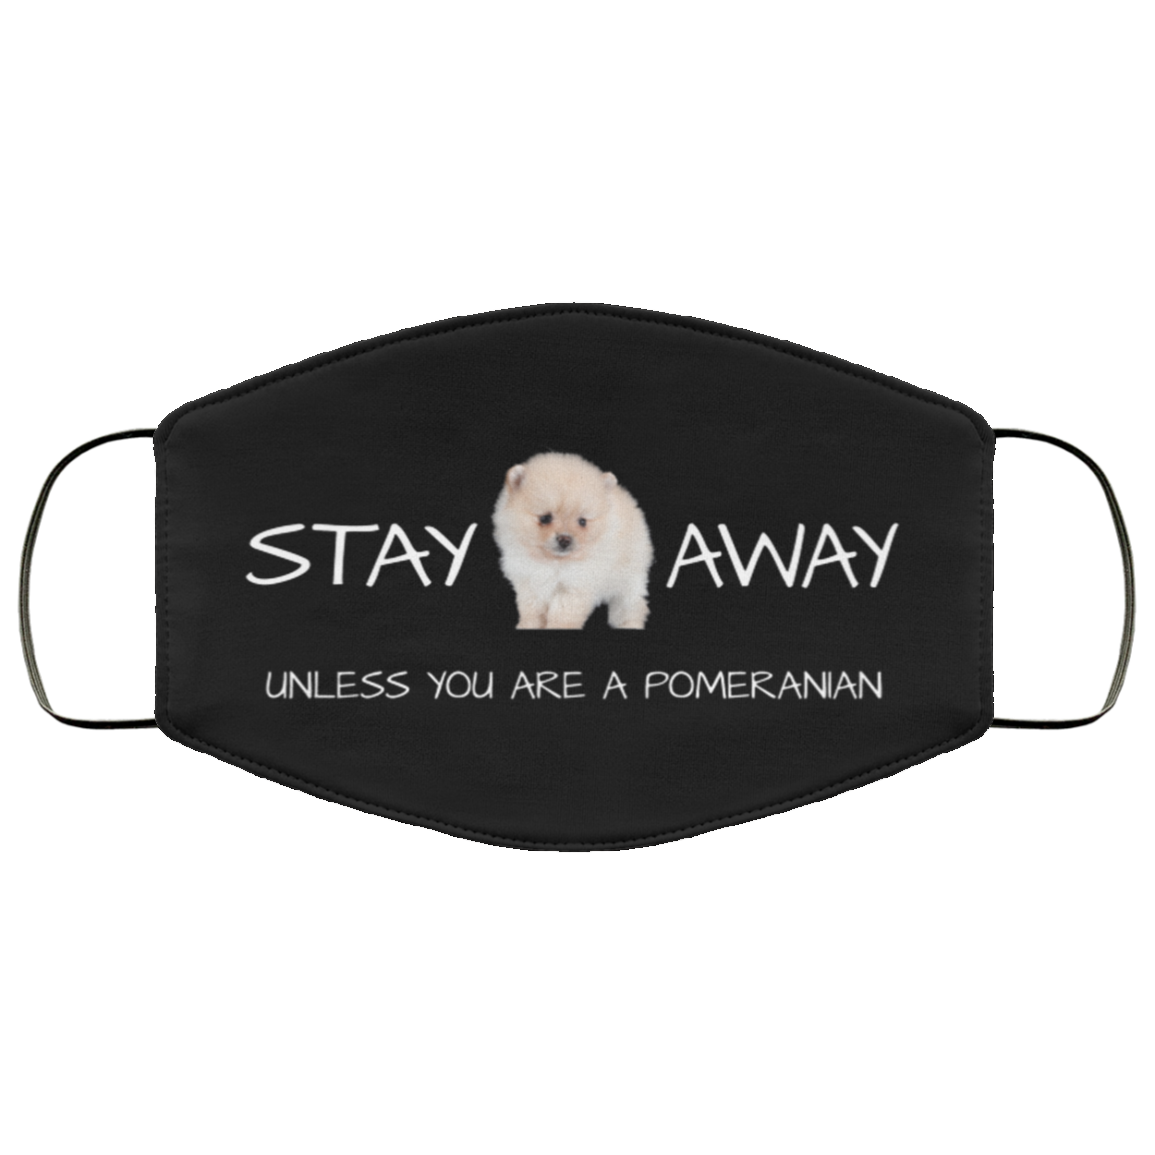 Pomeranian Face Mask, Stay Away Unless You Are a Pomeranian